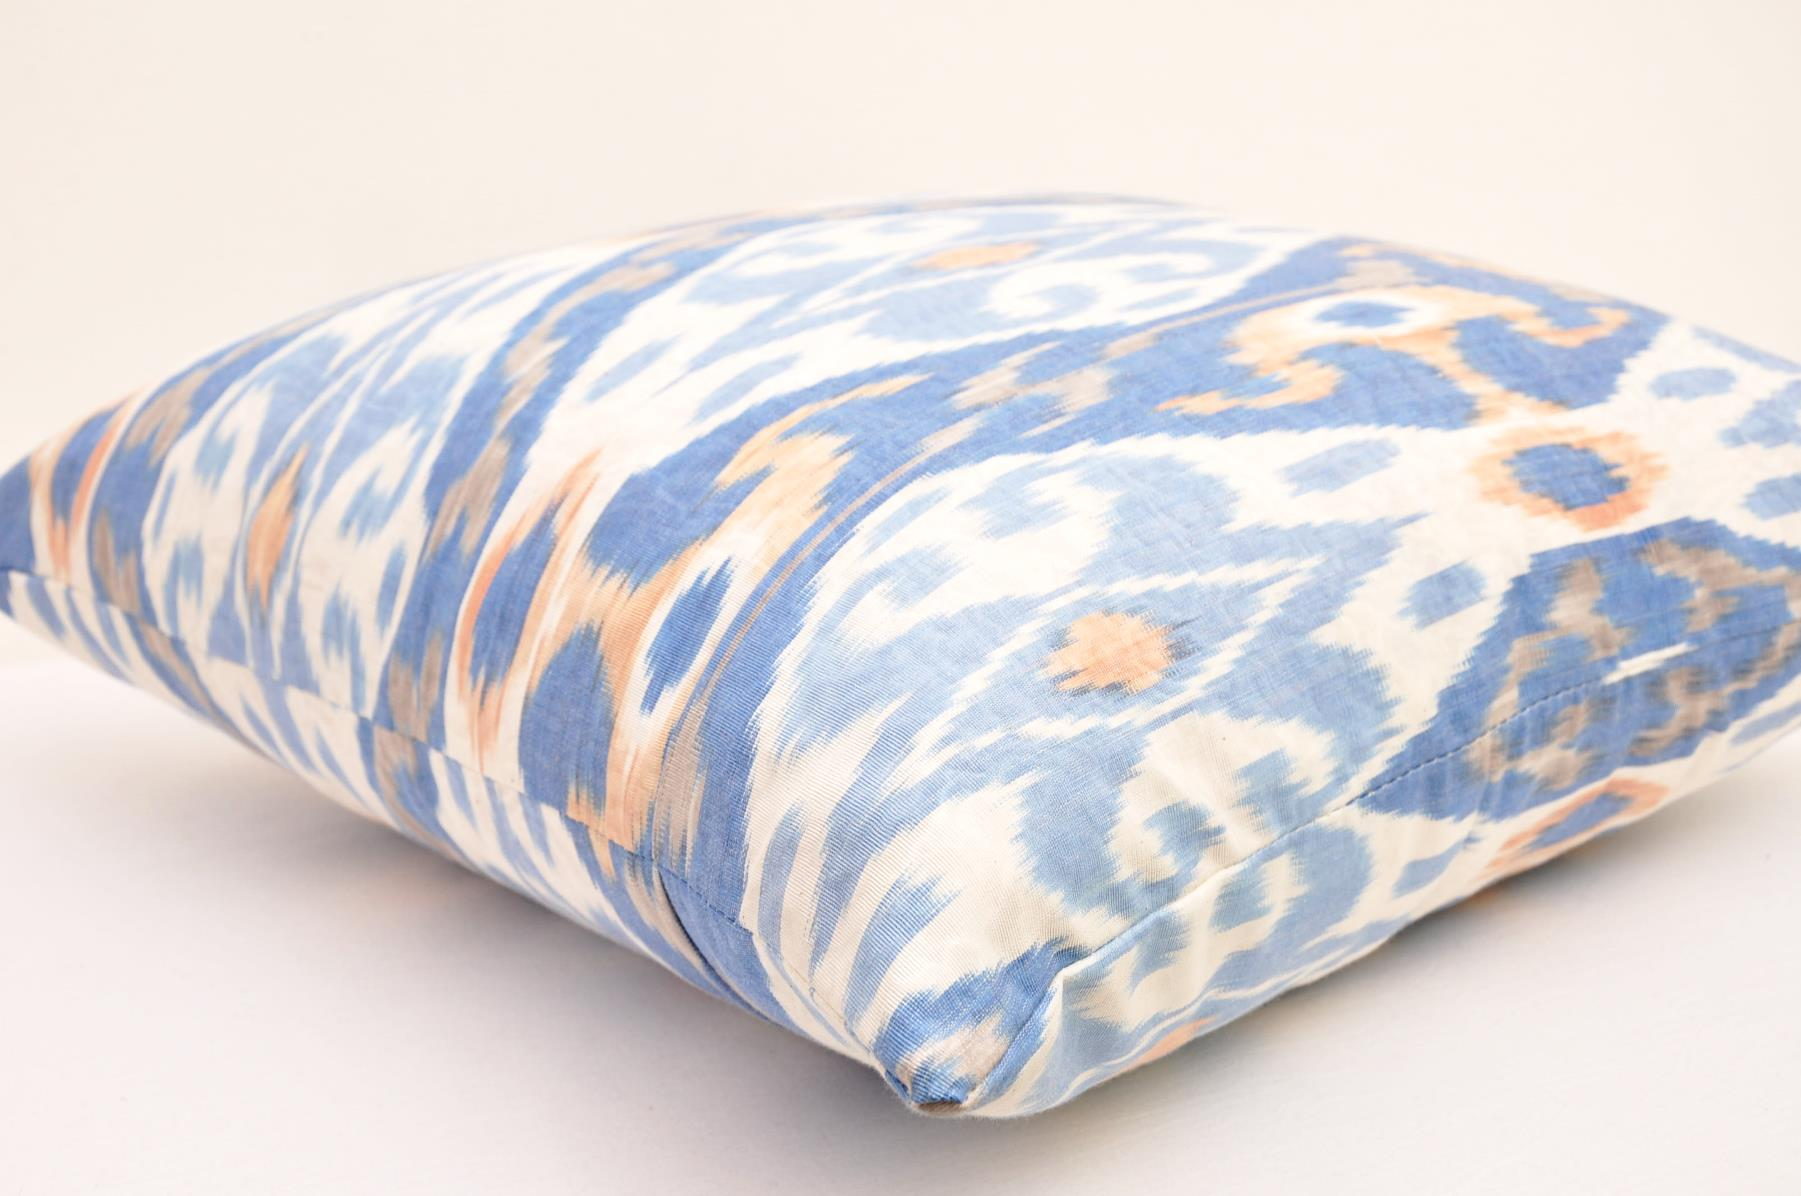 Handmade Ikat Throw Pillows : Handmade ikat designer pillow - Alesouk Grand Bazaar online shopping